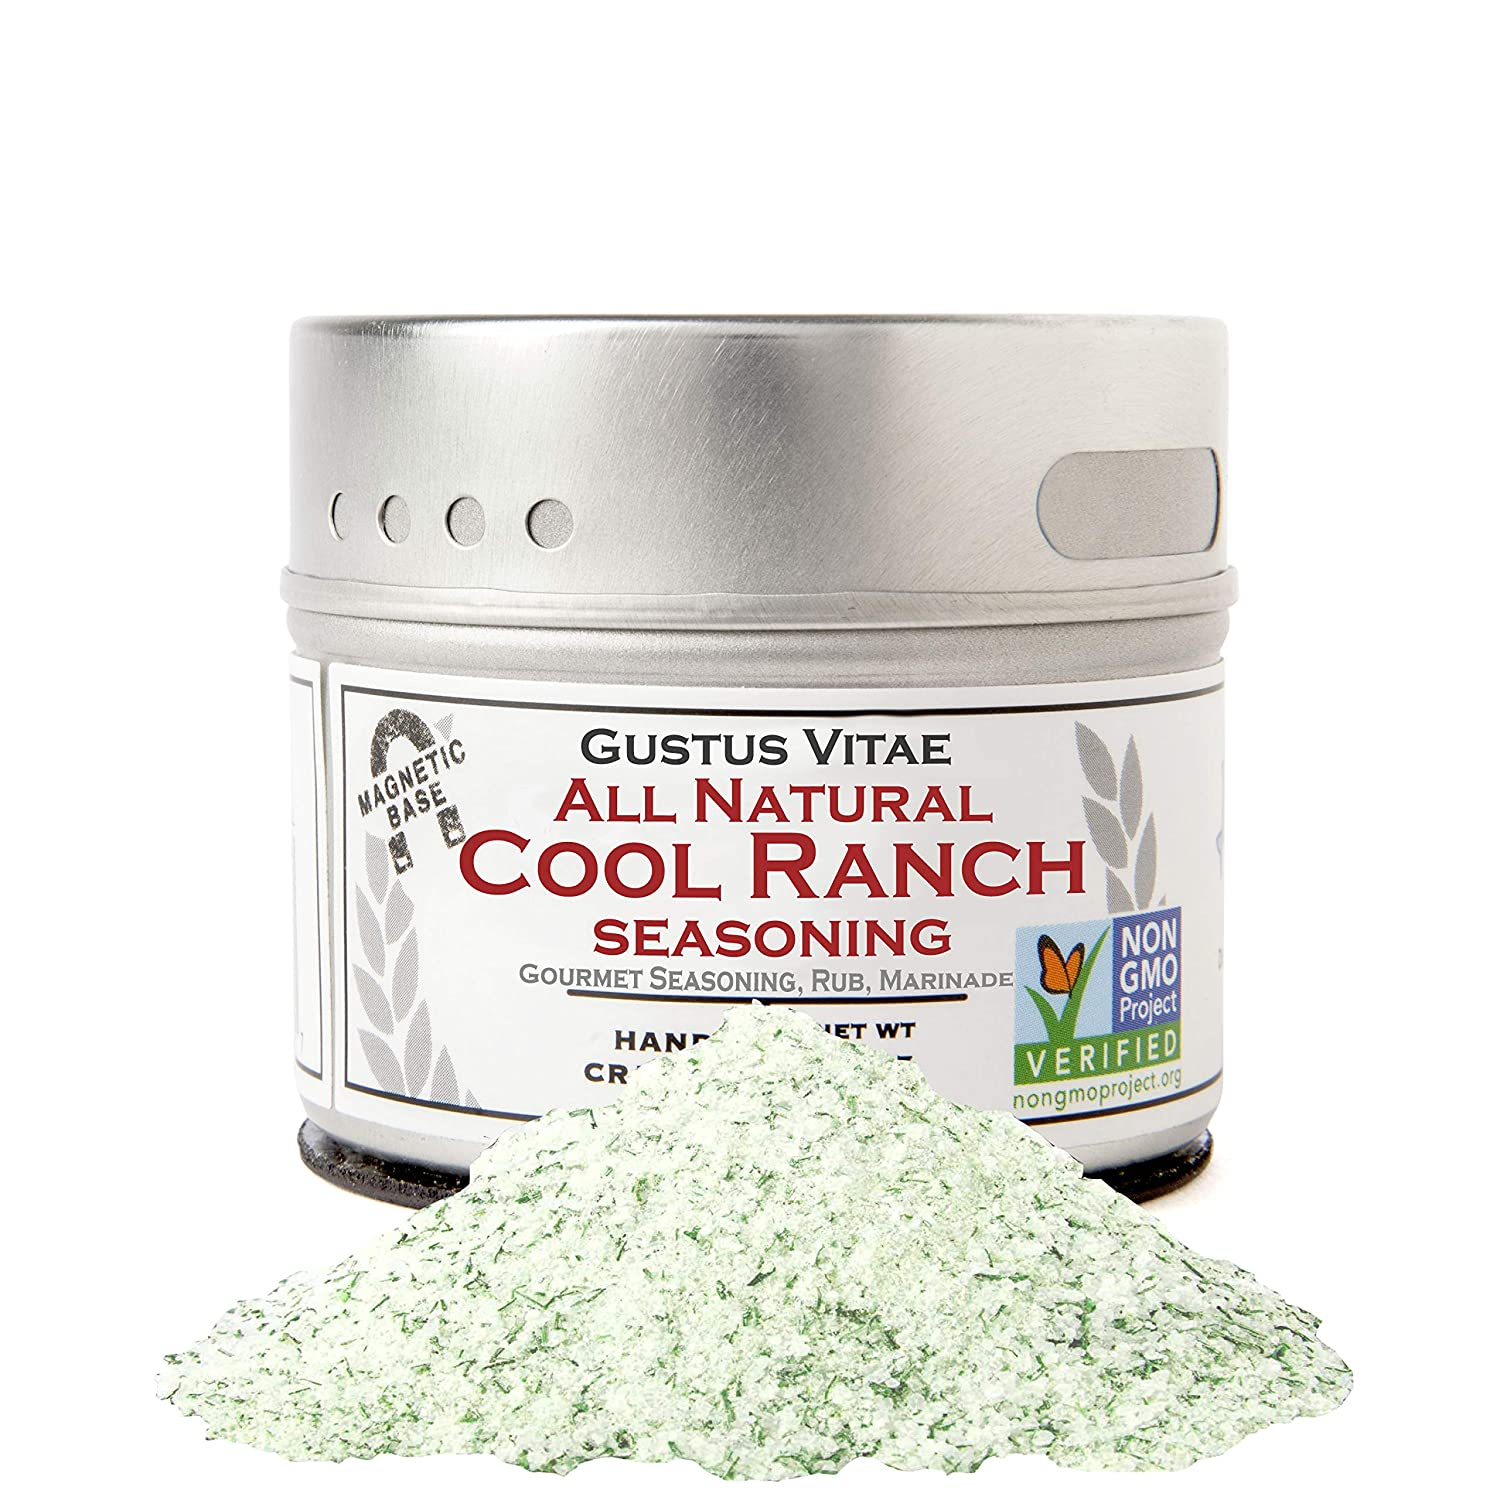 All Natural Cool Ranch Seasoning - Authentic Artisanal Gourmet Spice Mix - Non GMO Project Verified - 2 oz - Small Batch - Magnetic Tin - Gustus Vitae